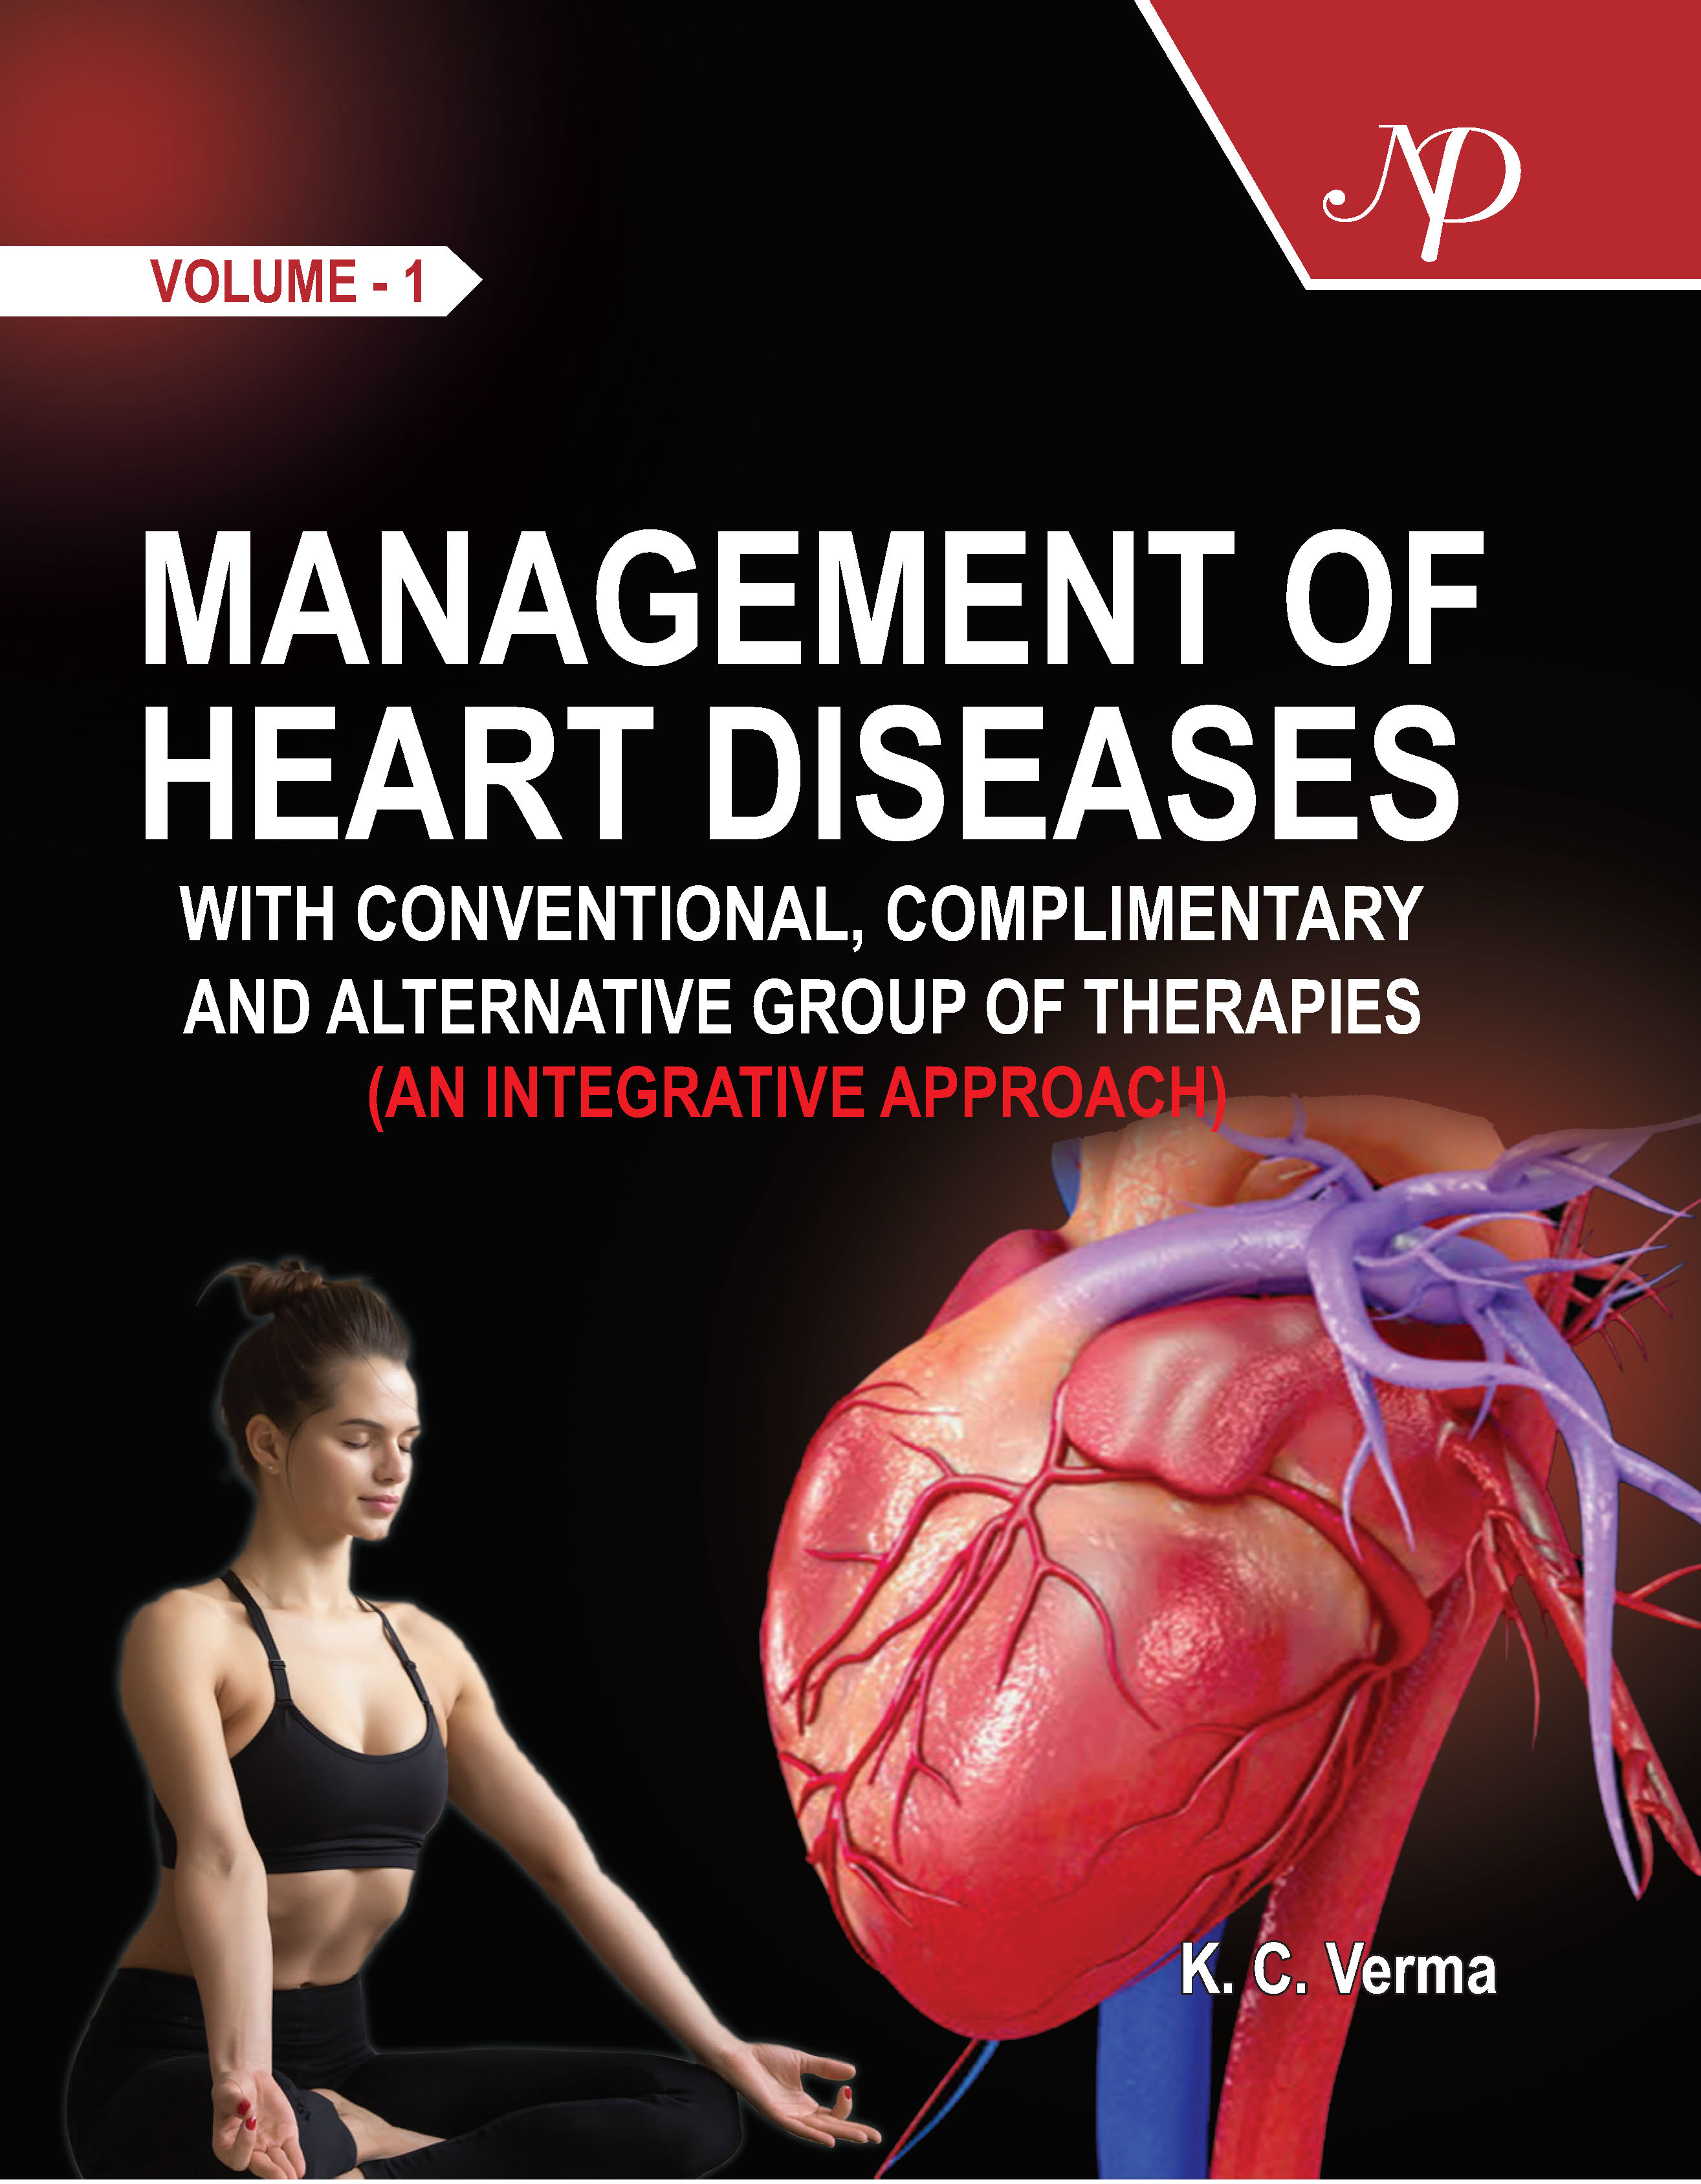 Management of Cover Heart Diseases with Conventional, Complimentary and Alternative Group of Therapies.jpg